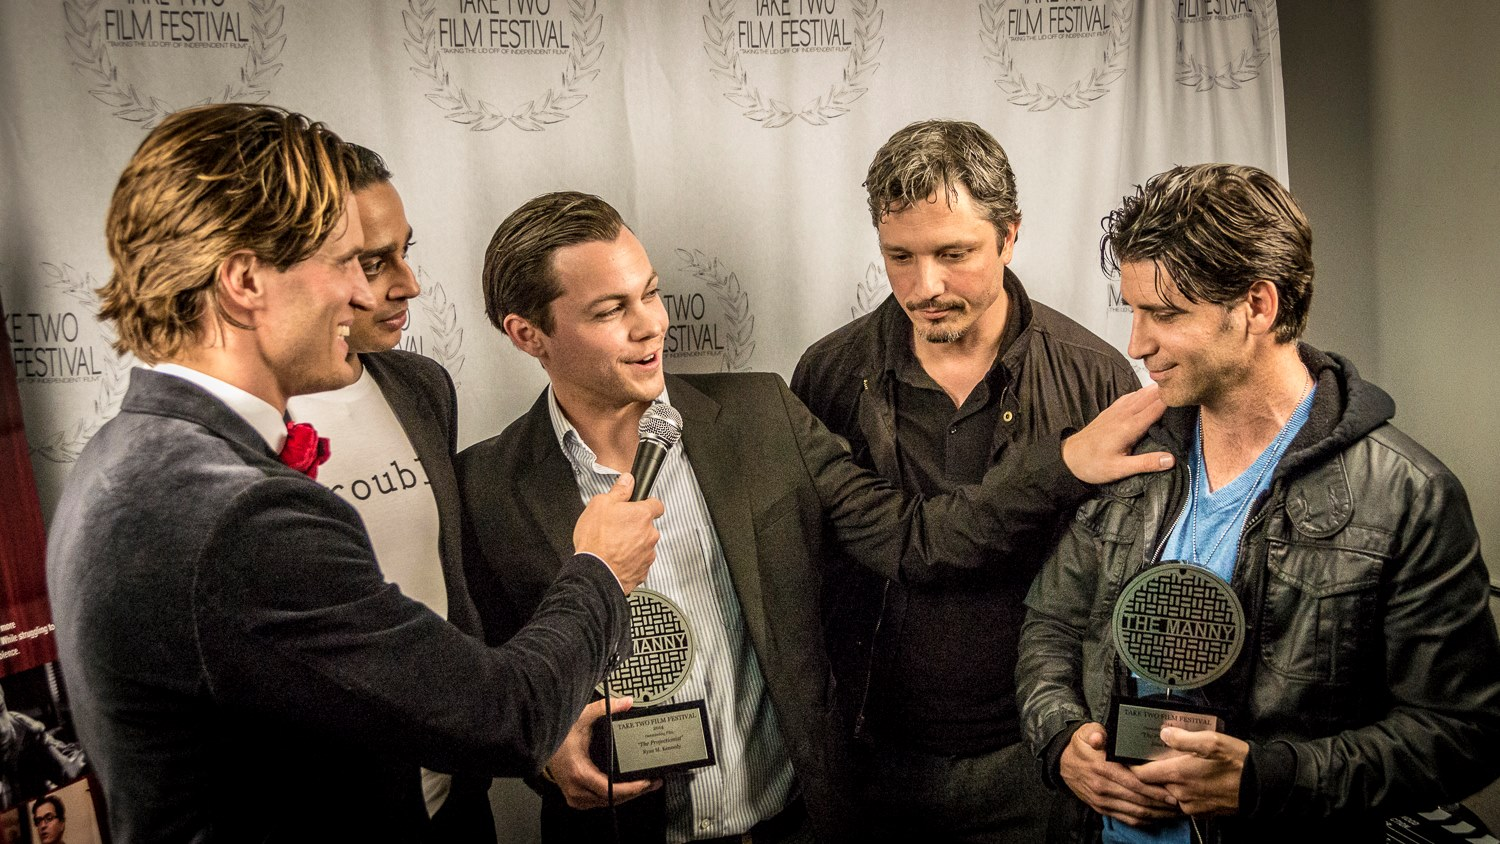 Andy Peeke, Atit Shah, Ryan M. Kennedy, Dominik Tiefenthaler, and Russ Russo, at the The Projectionist Screening at the Take Two Film Festival 2014. Photo by Edward Stern